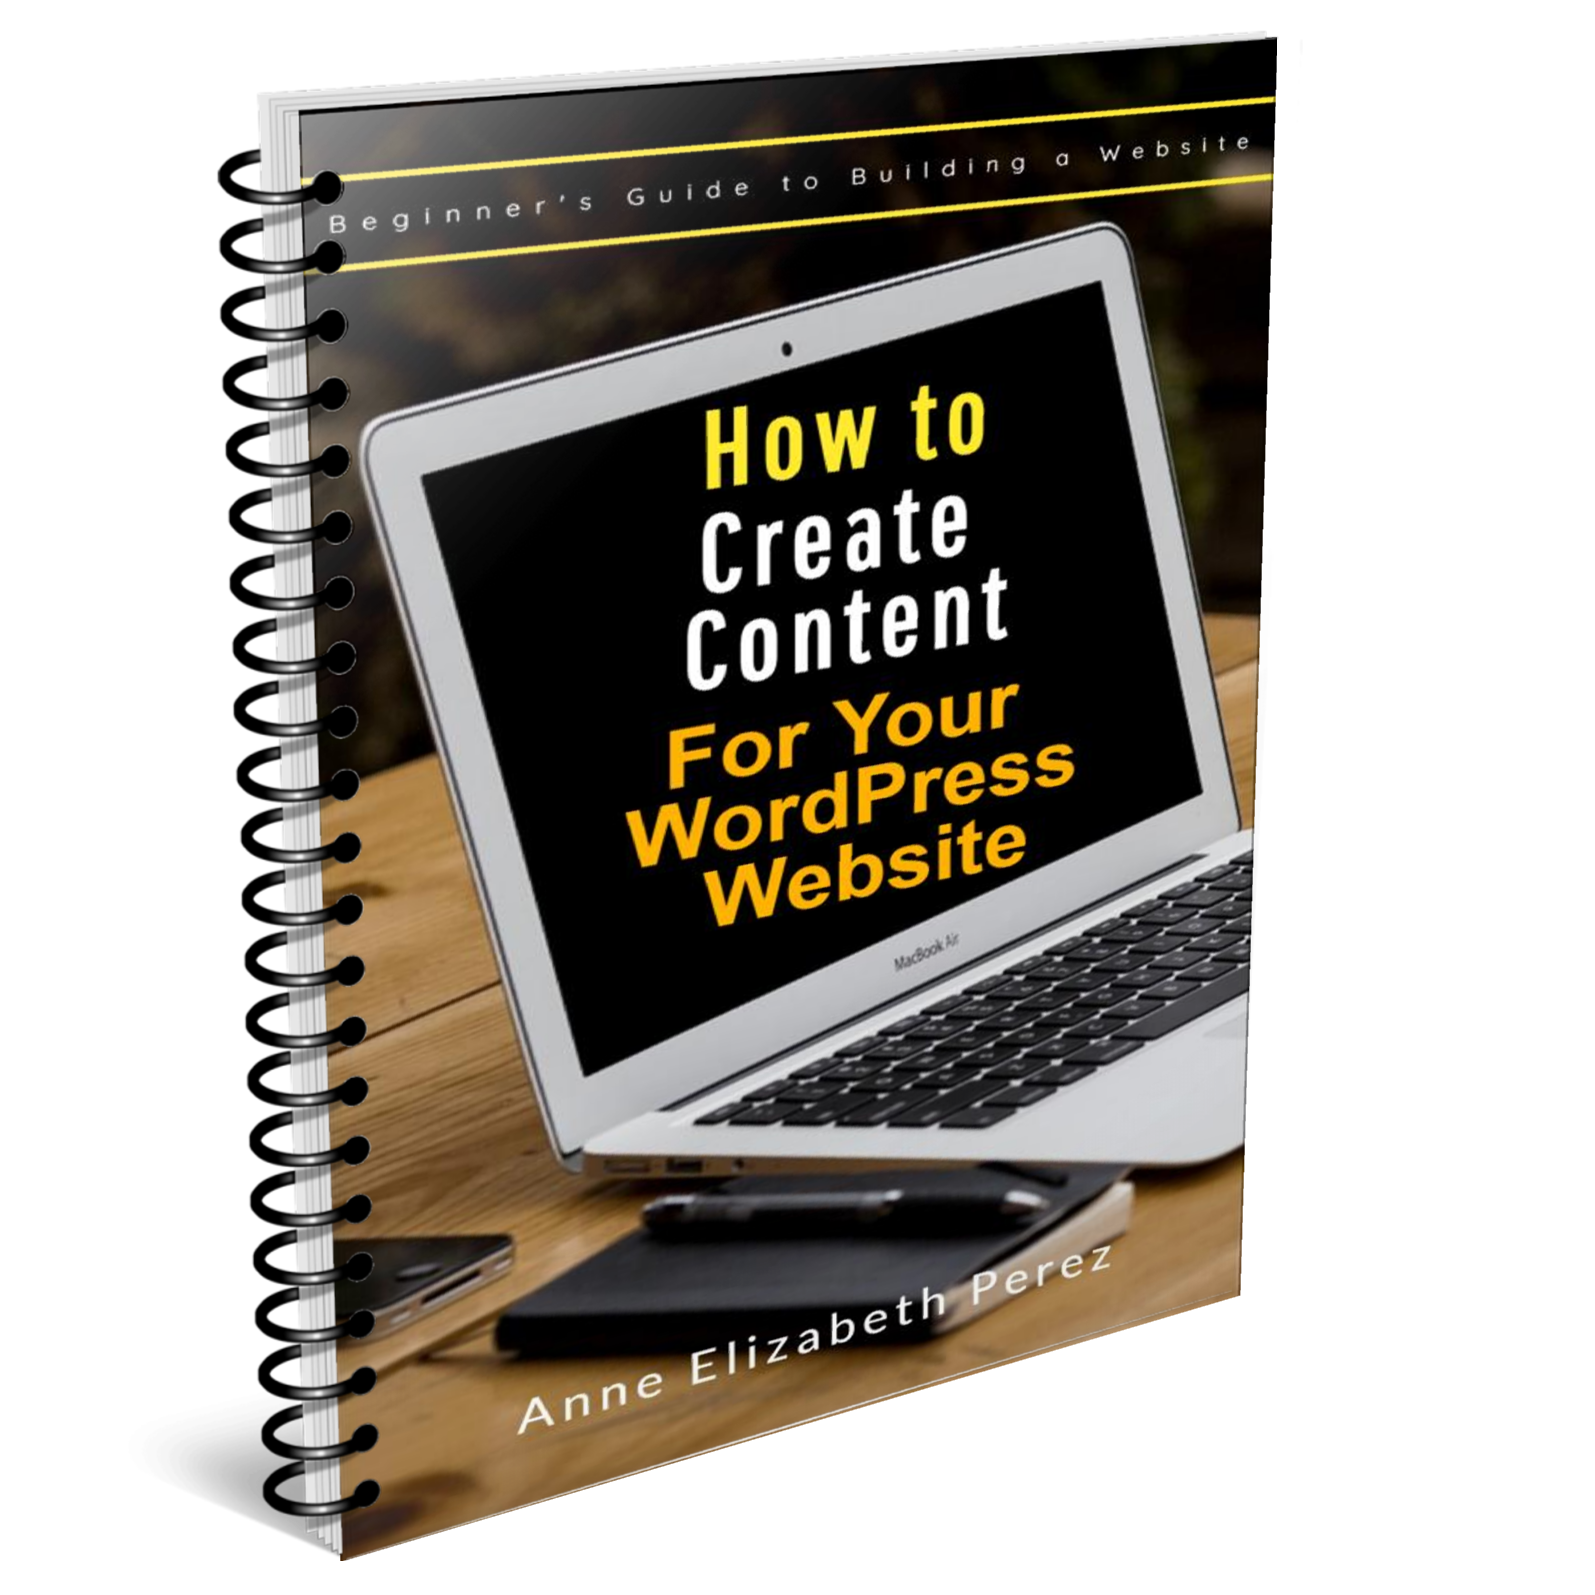 How to create content for your wordpress website